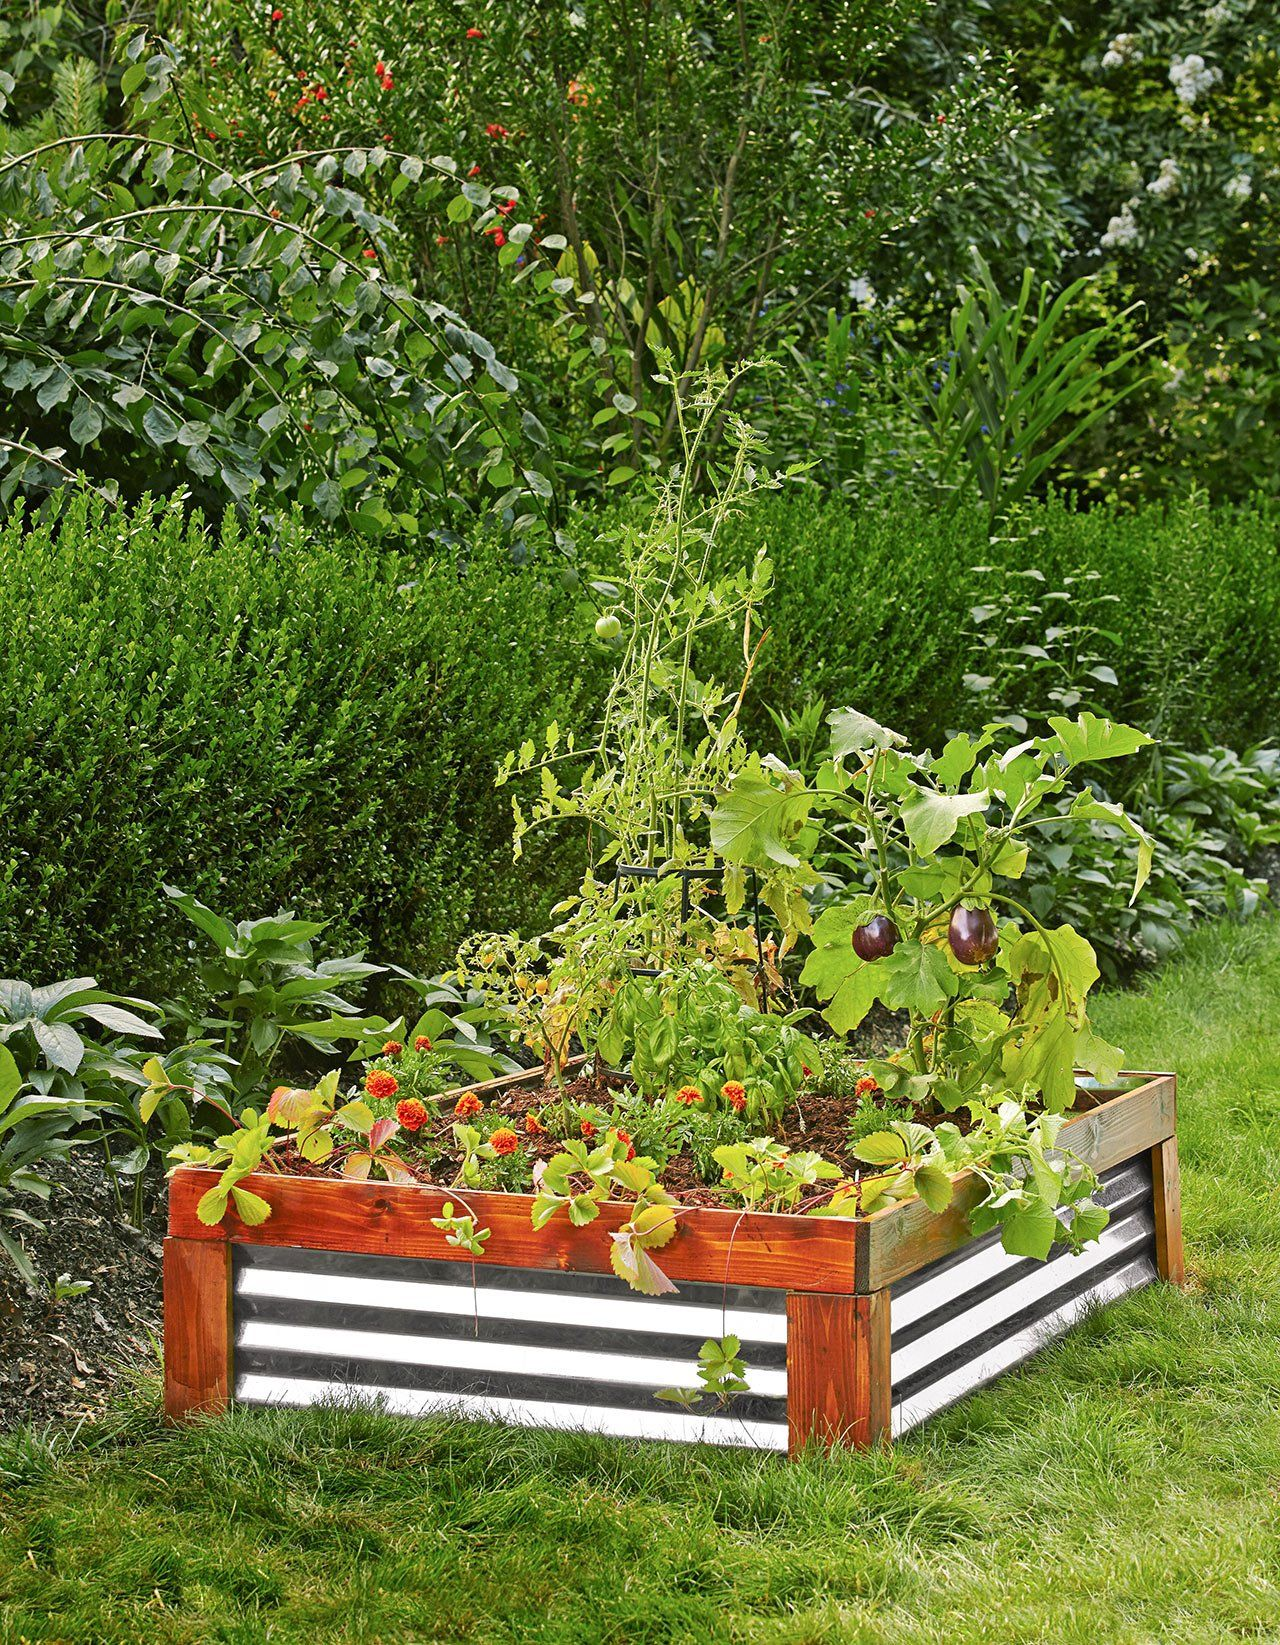 7 Reasons Why You Need a Raised Garden Bed (And How to